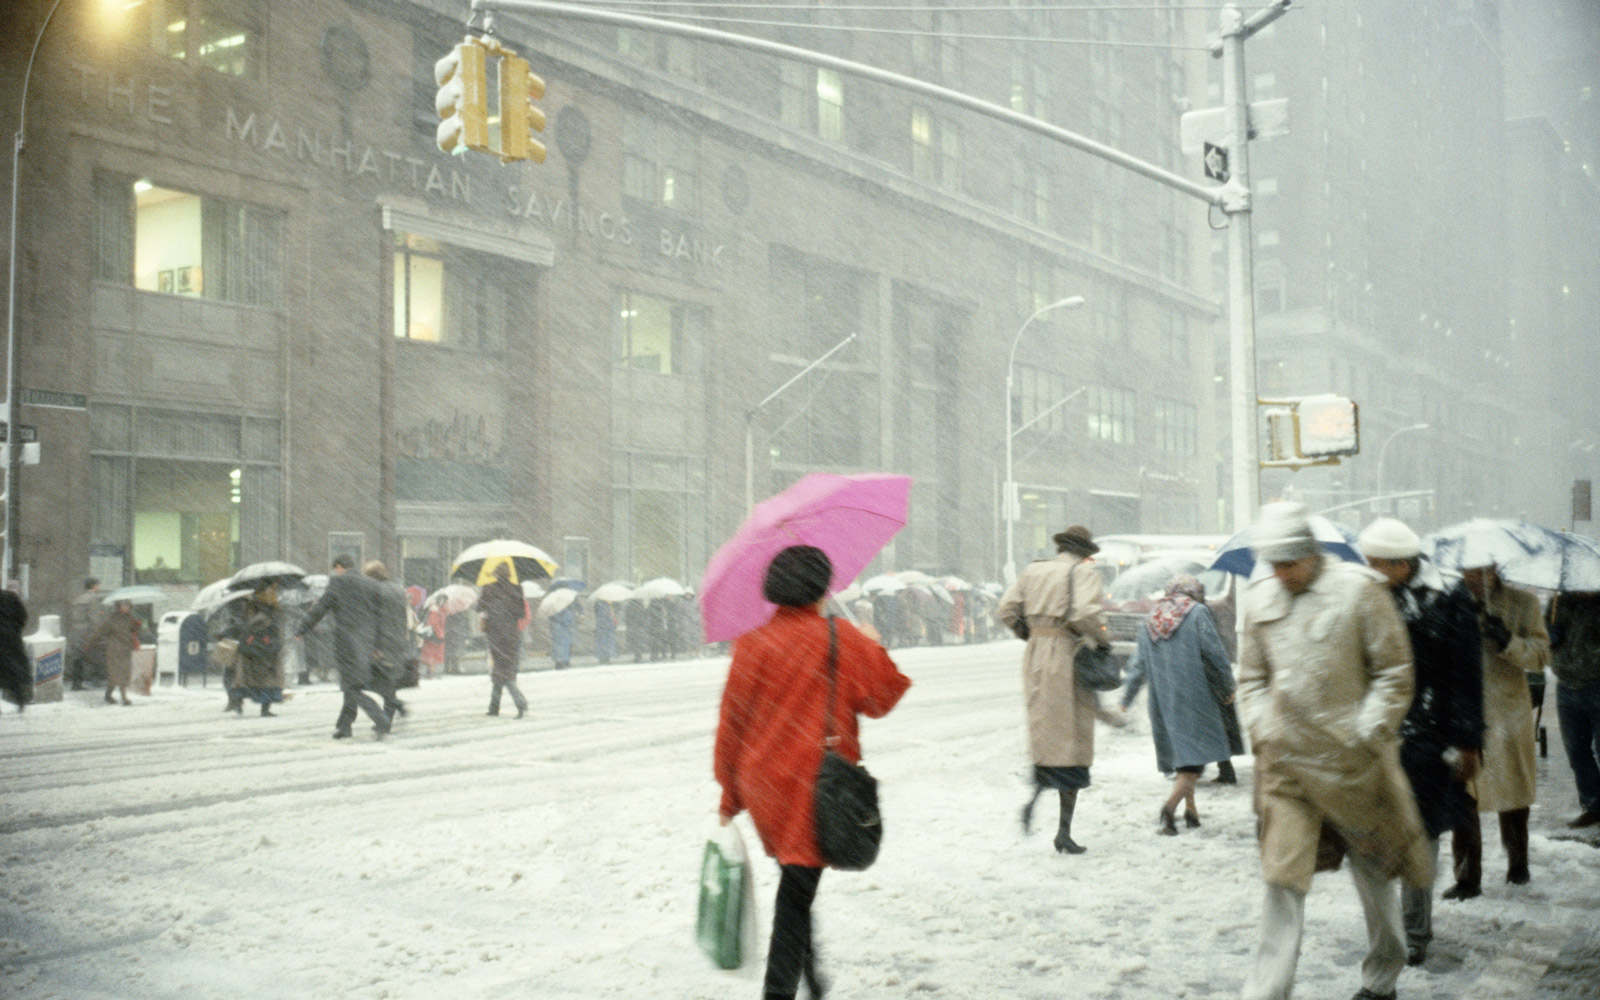 USA, New York, New York City, Madison Avenue, people walking in snow